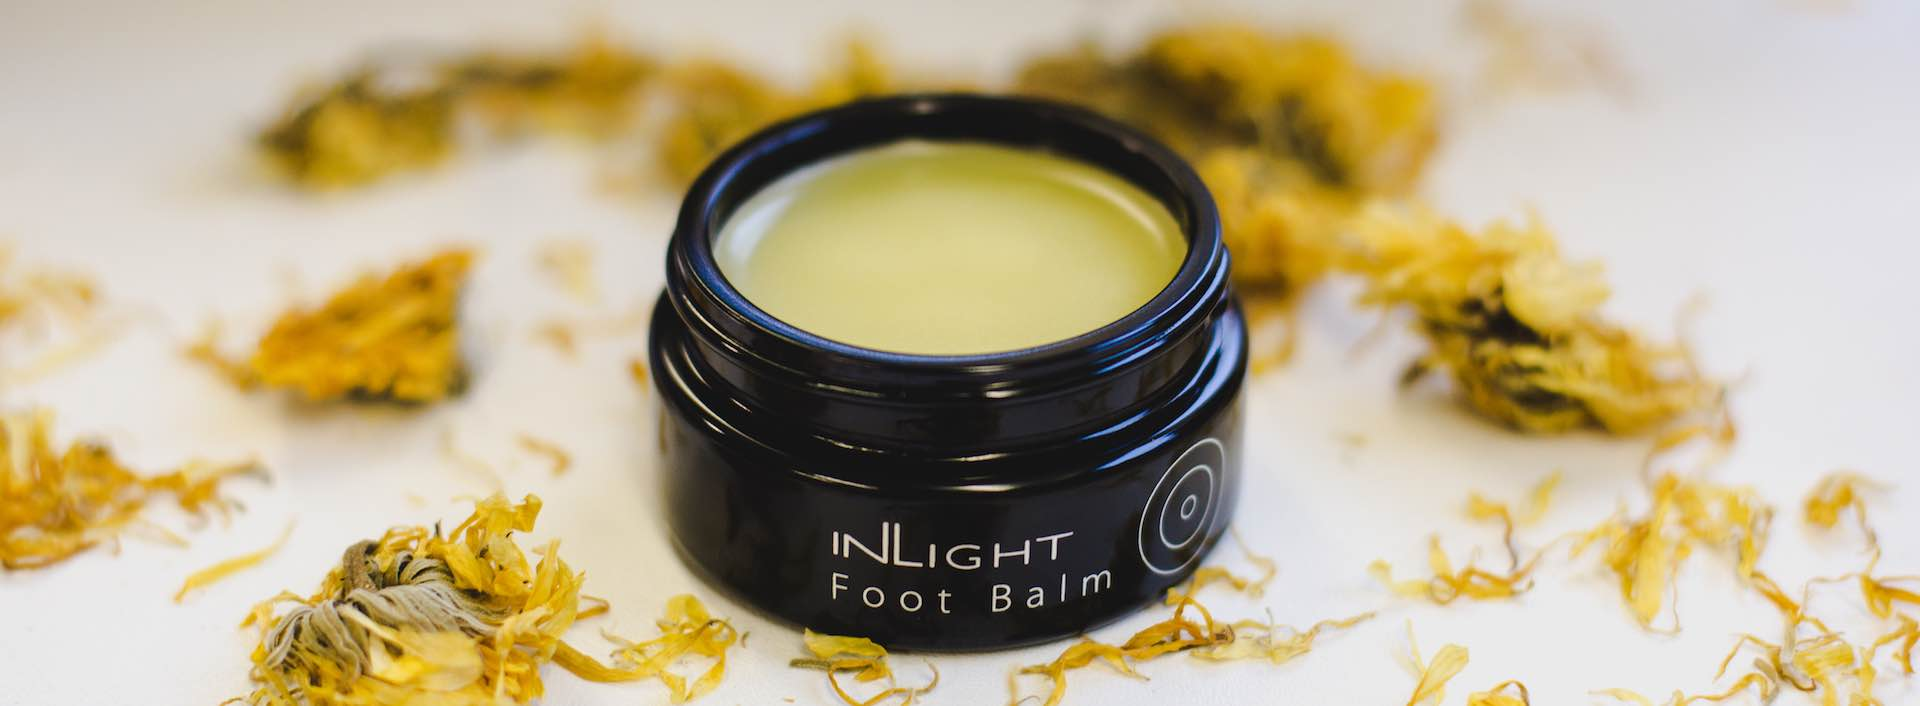 An exquisite, multi-tasking, aromatic balm to revive tired, aching feet and legs, melt away dry, rough skin and improve circulation